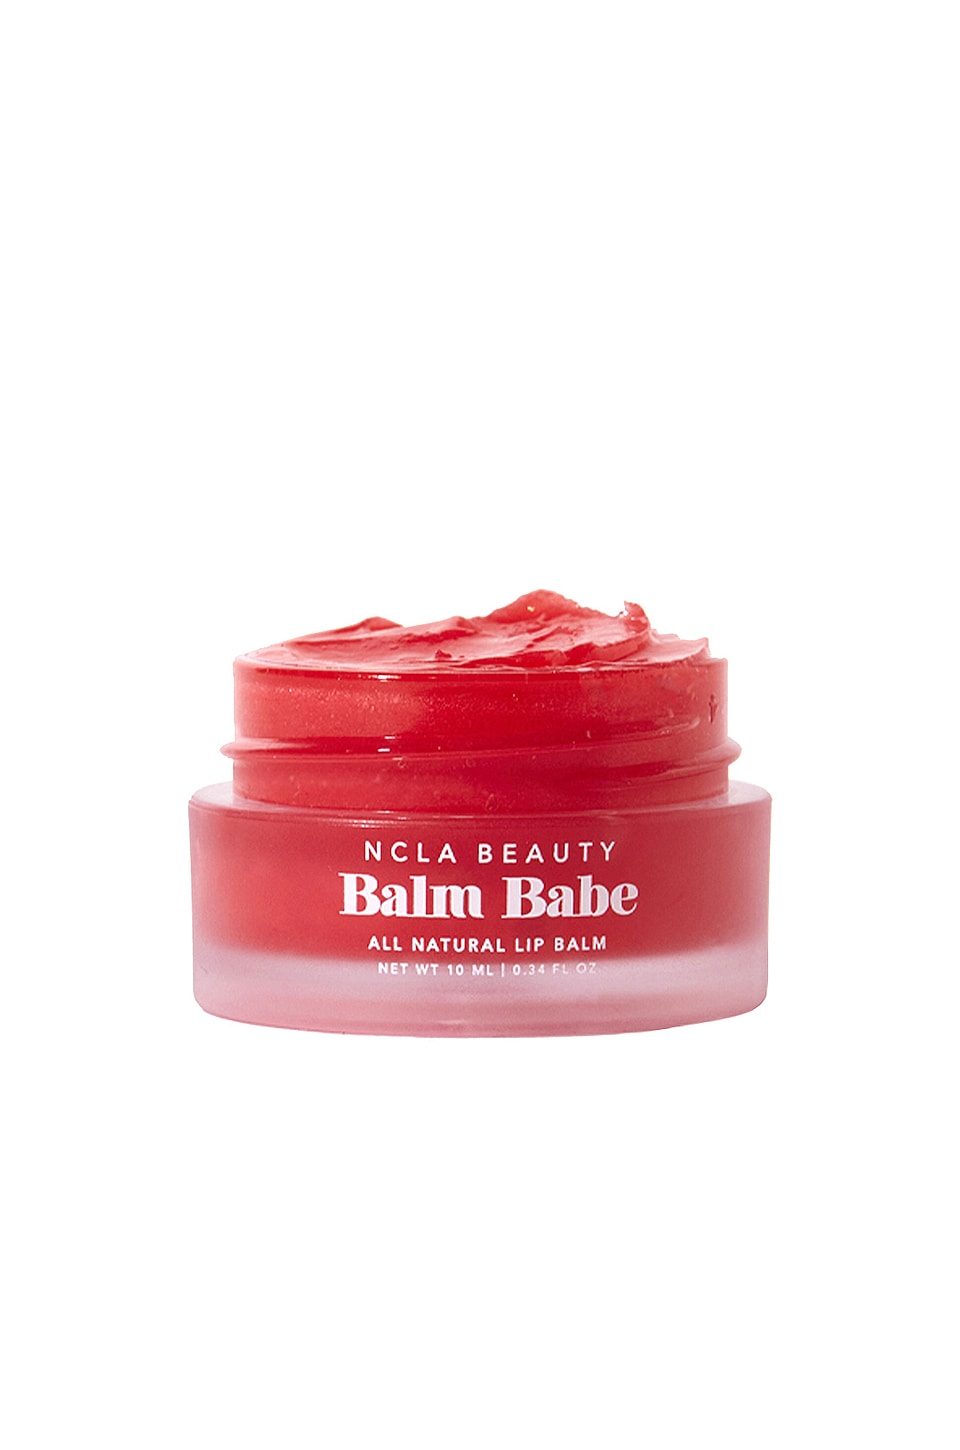 NCLA Balm Babe 100% Natural Lip Balm in Red Roses